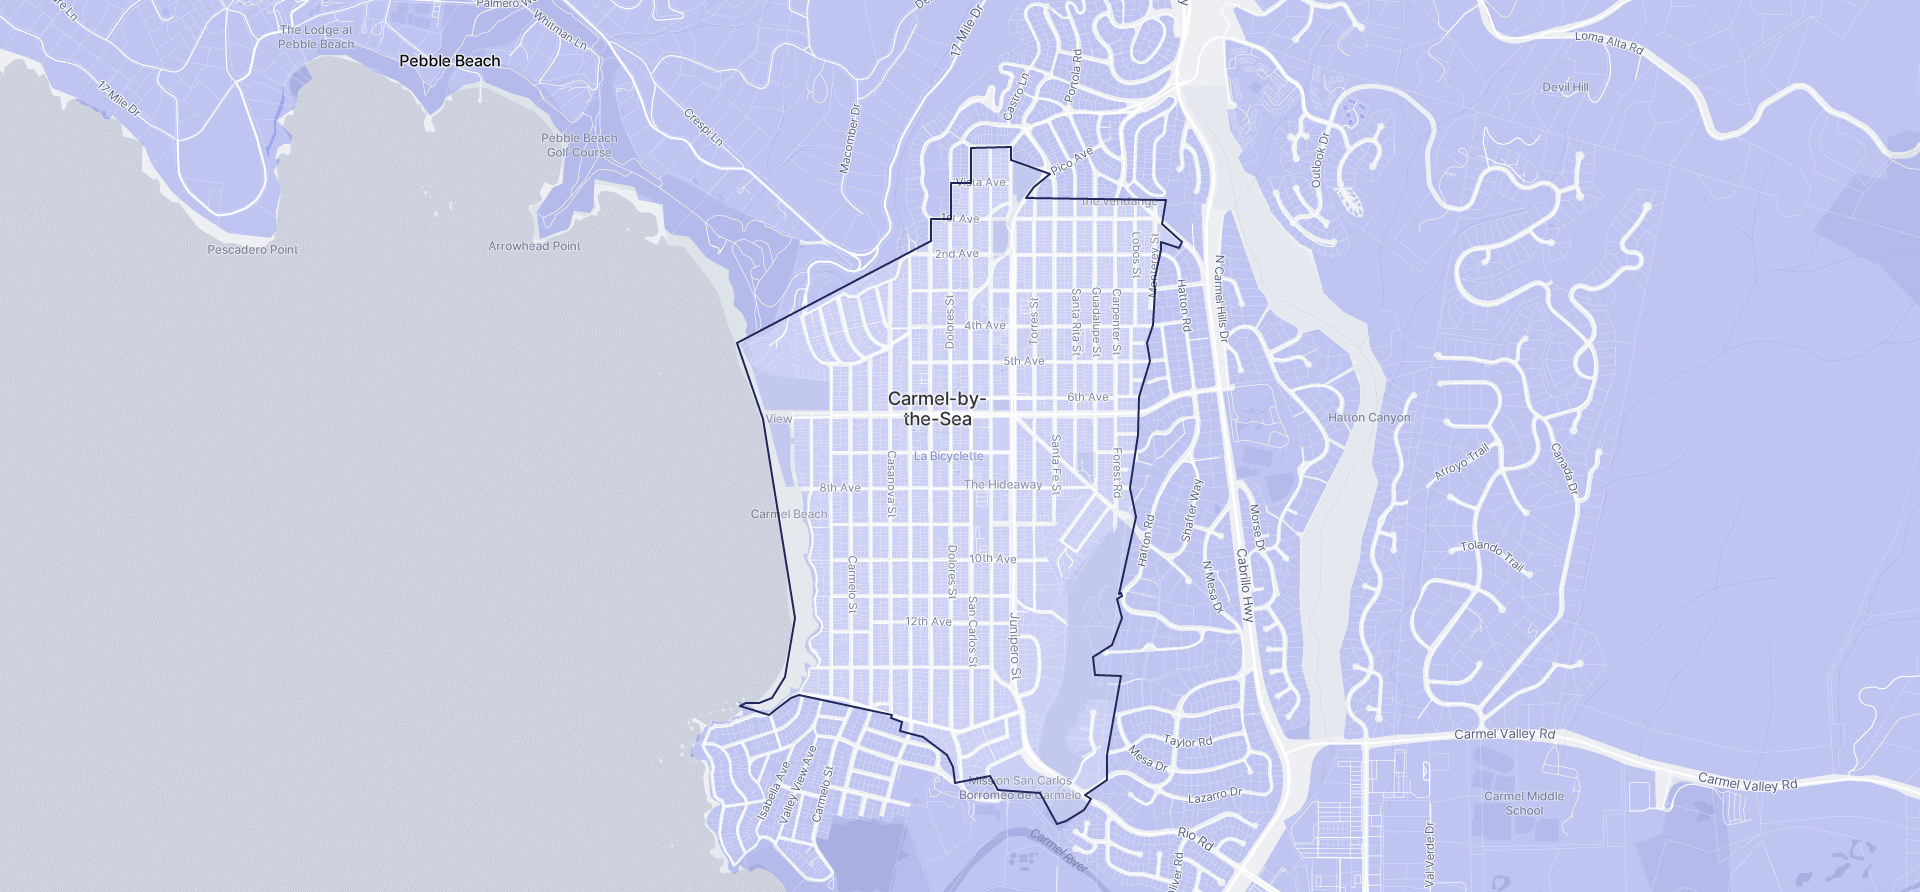 Image of Carmel-by-the-Sea boundaries on a map.